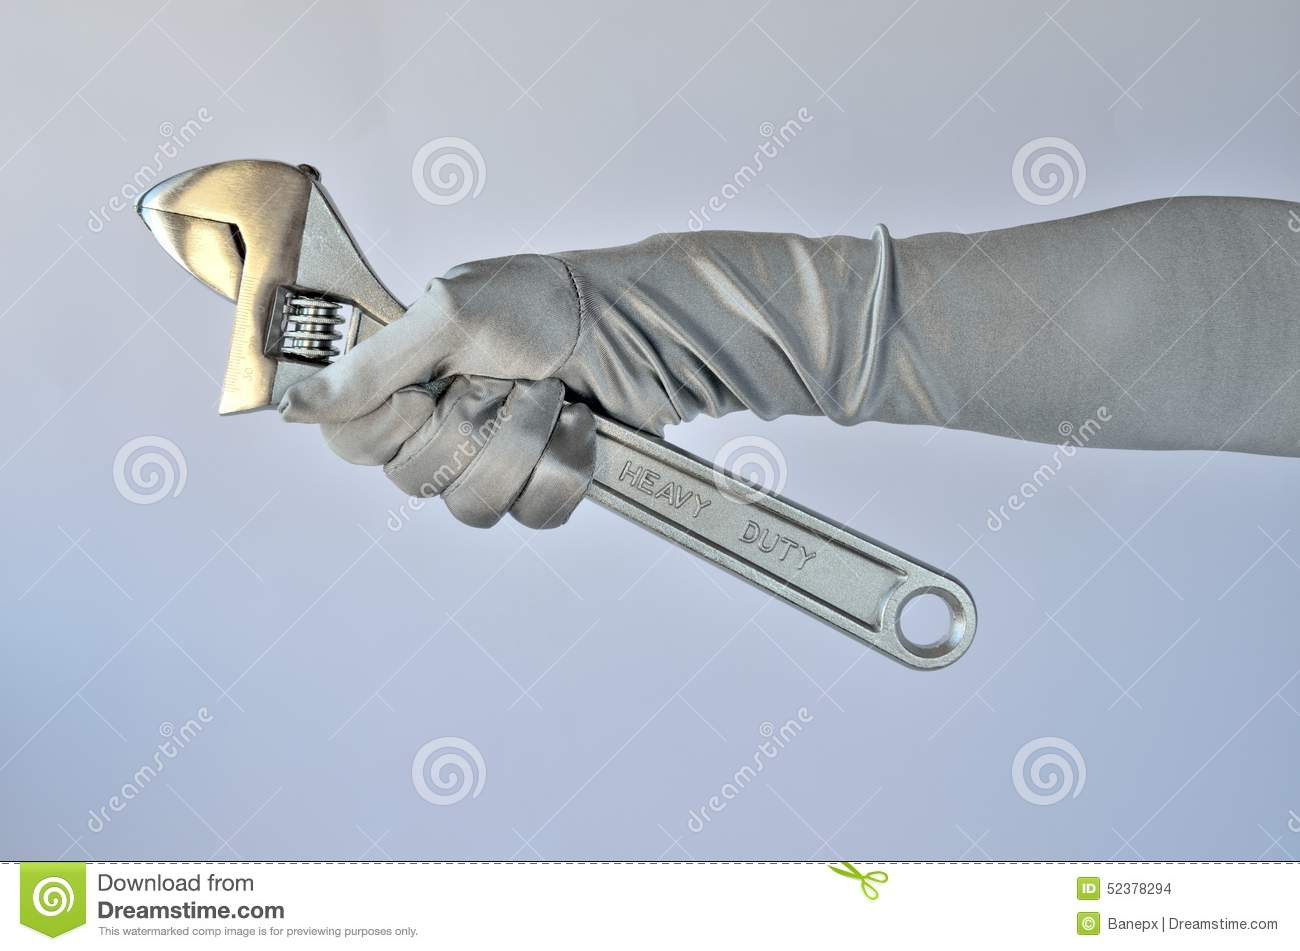 Woman s hand and wrench